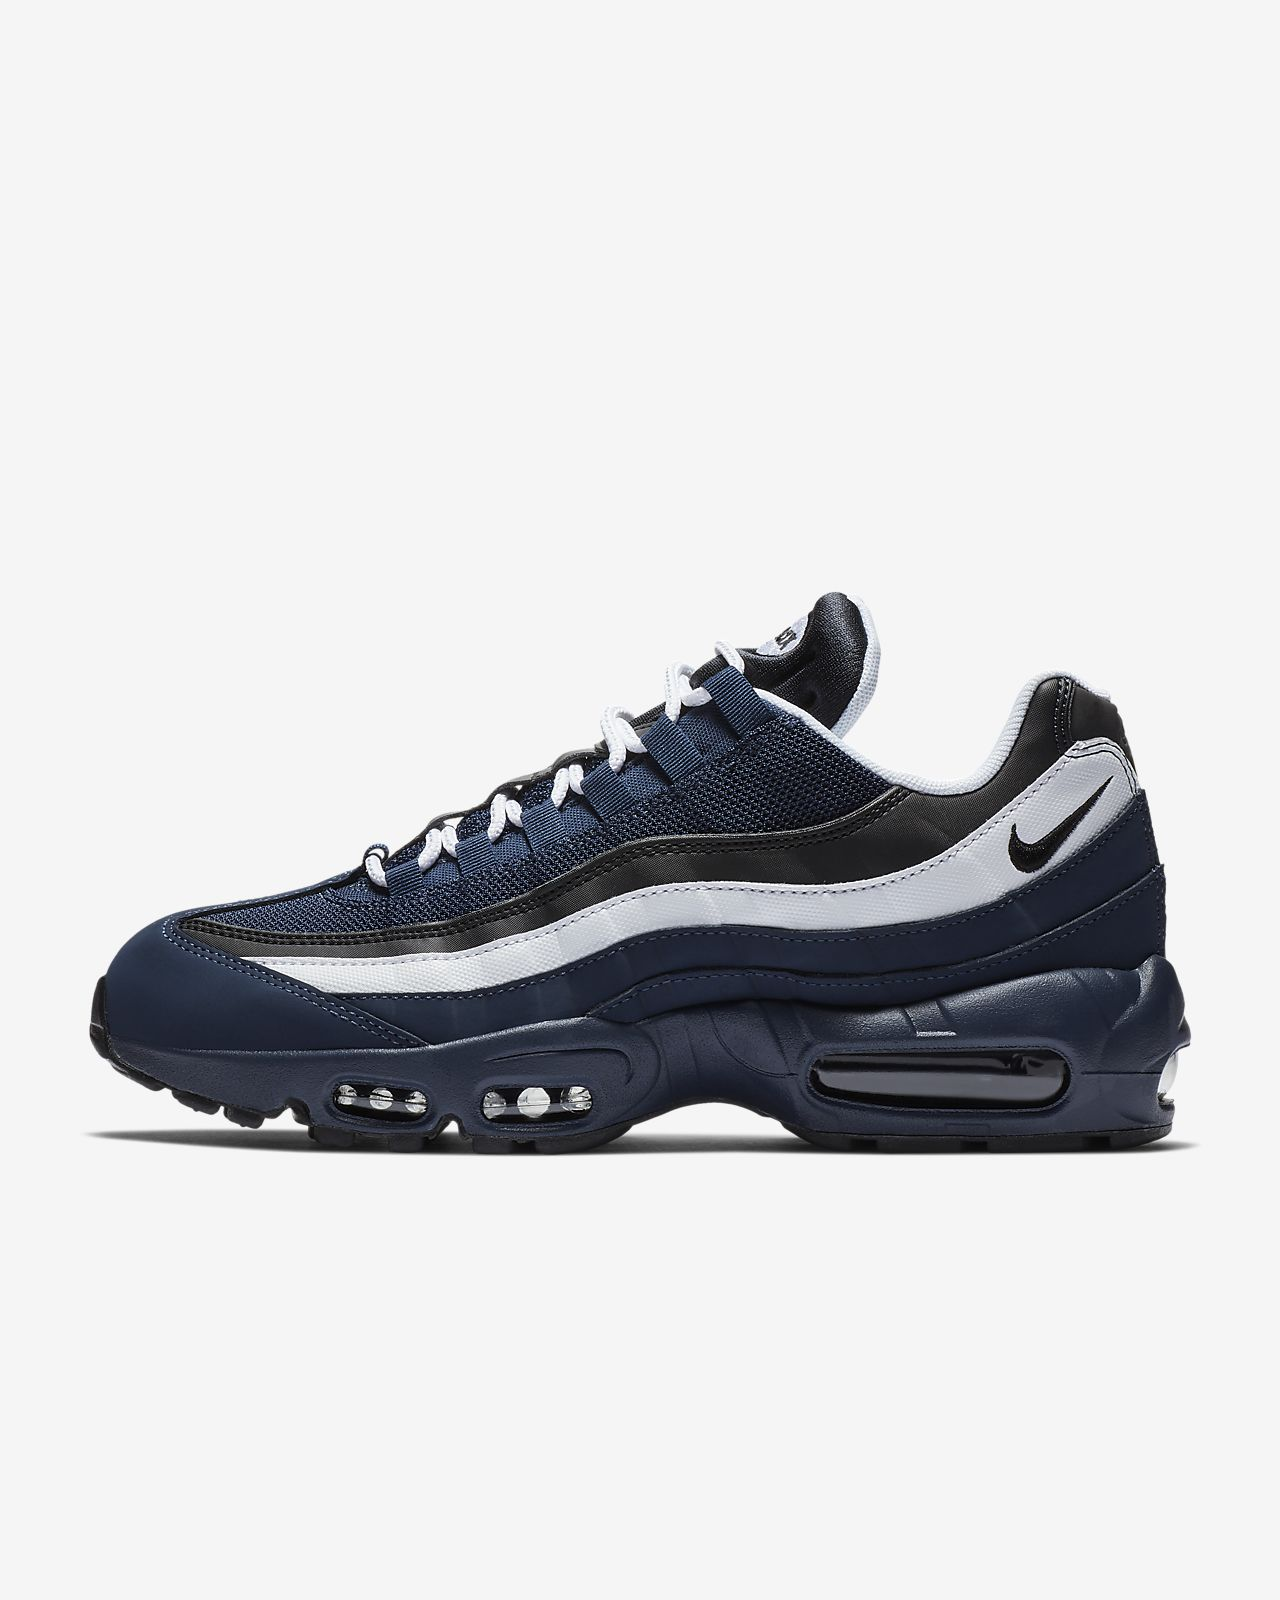 70038beb0be Nike Air Max 95 Essential Men s Shoe. Nike.com AU